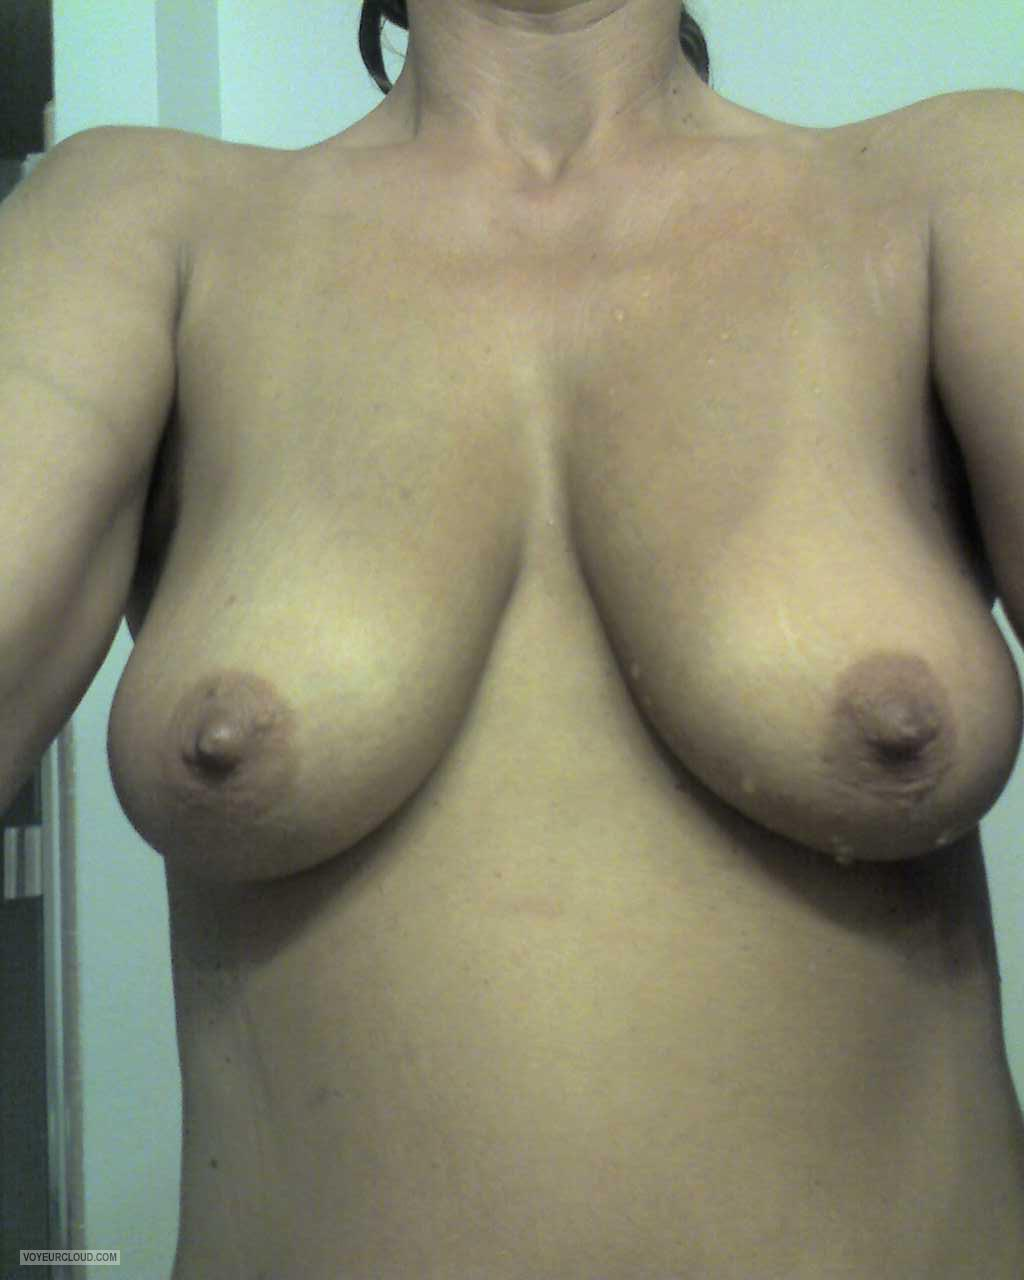 Tit Flash: Wife's Tanlined Medium Tits (Selfie) - Zawife from United States